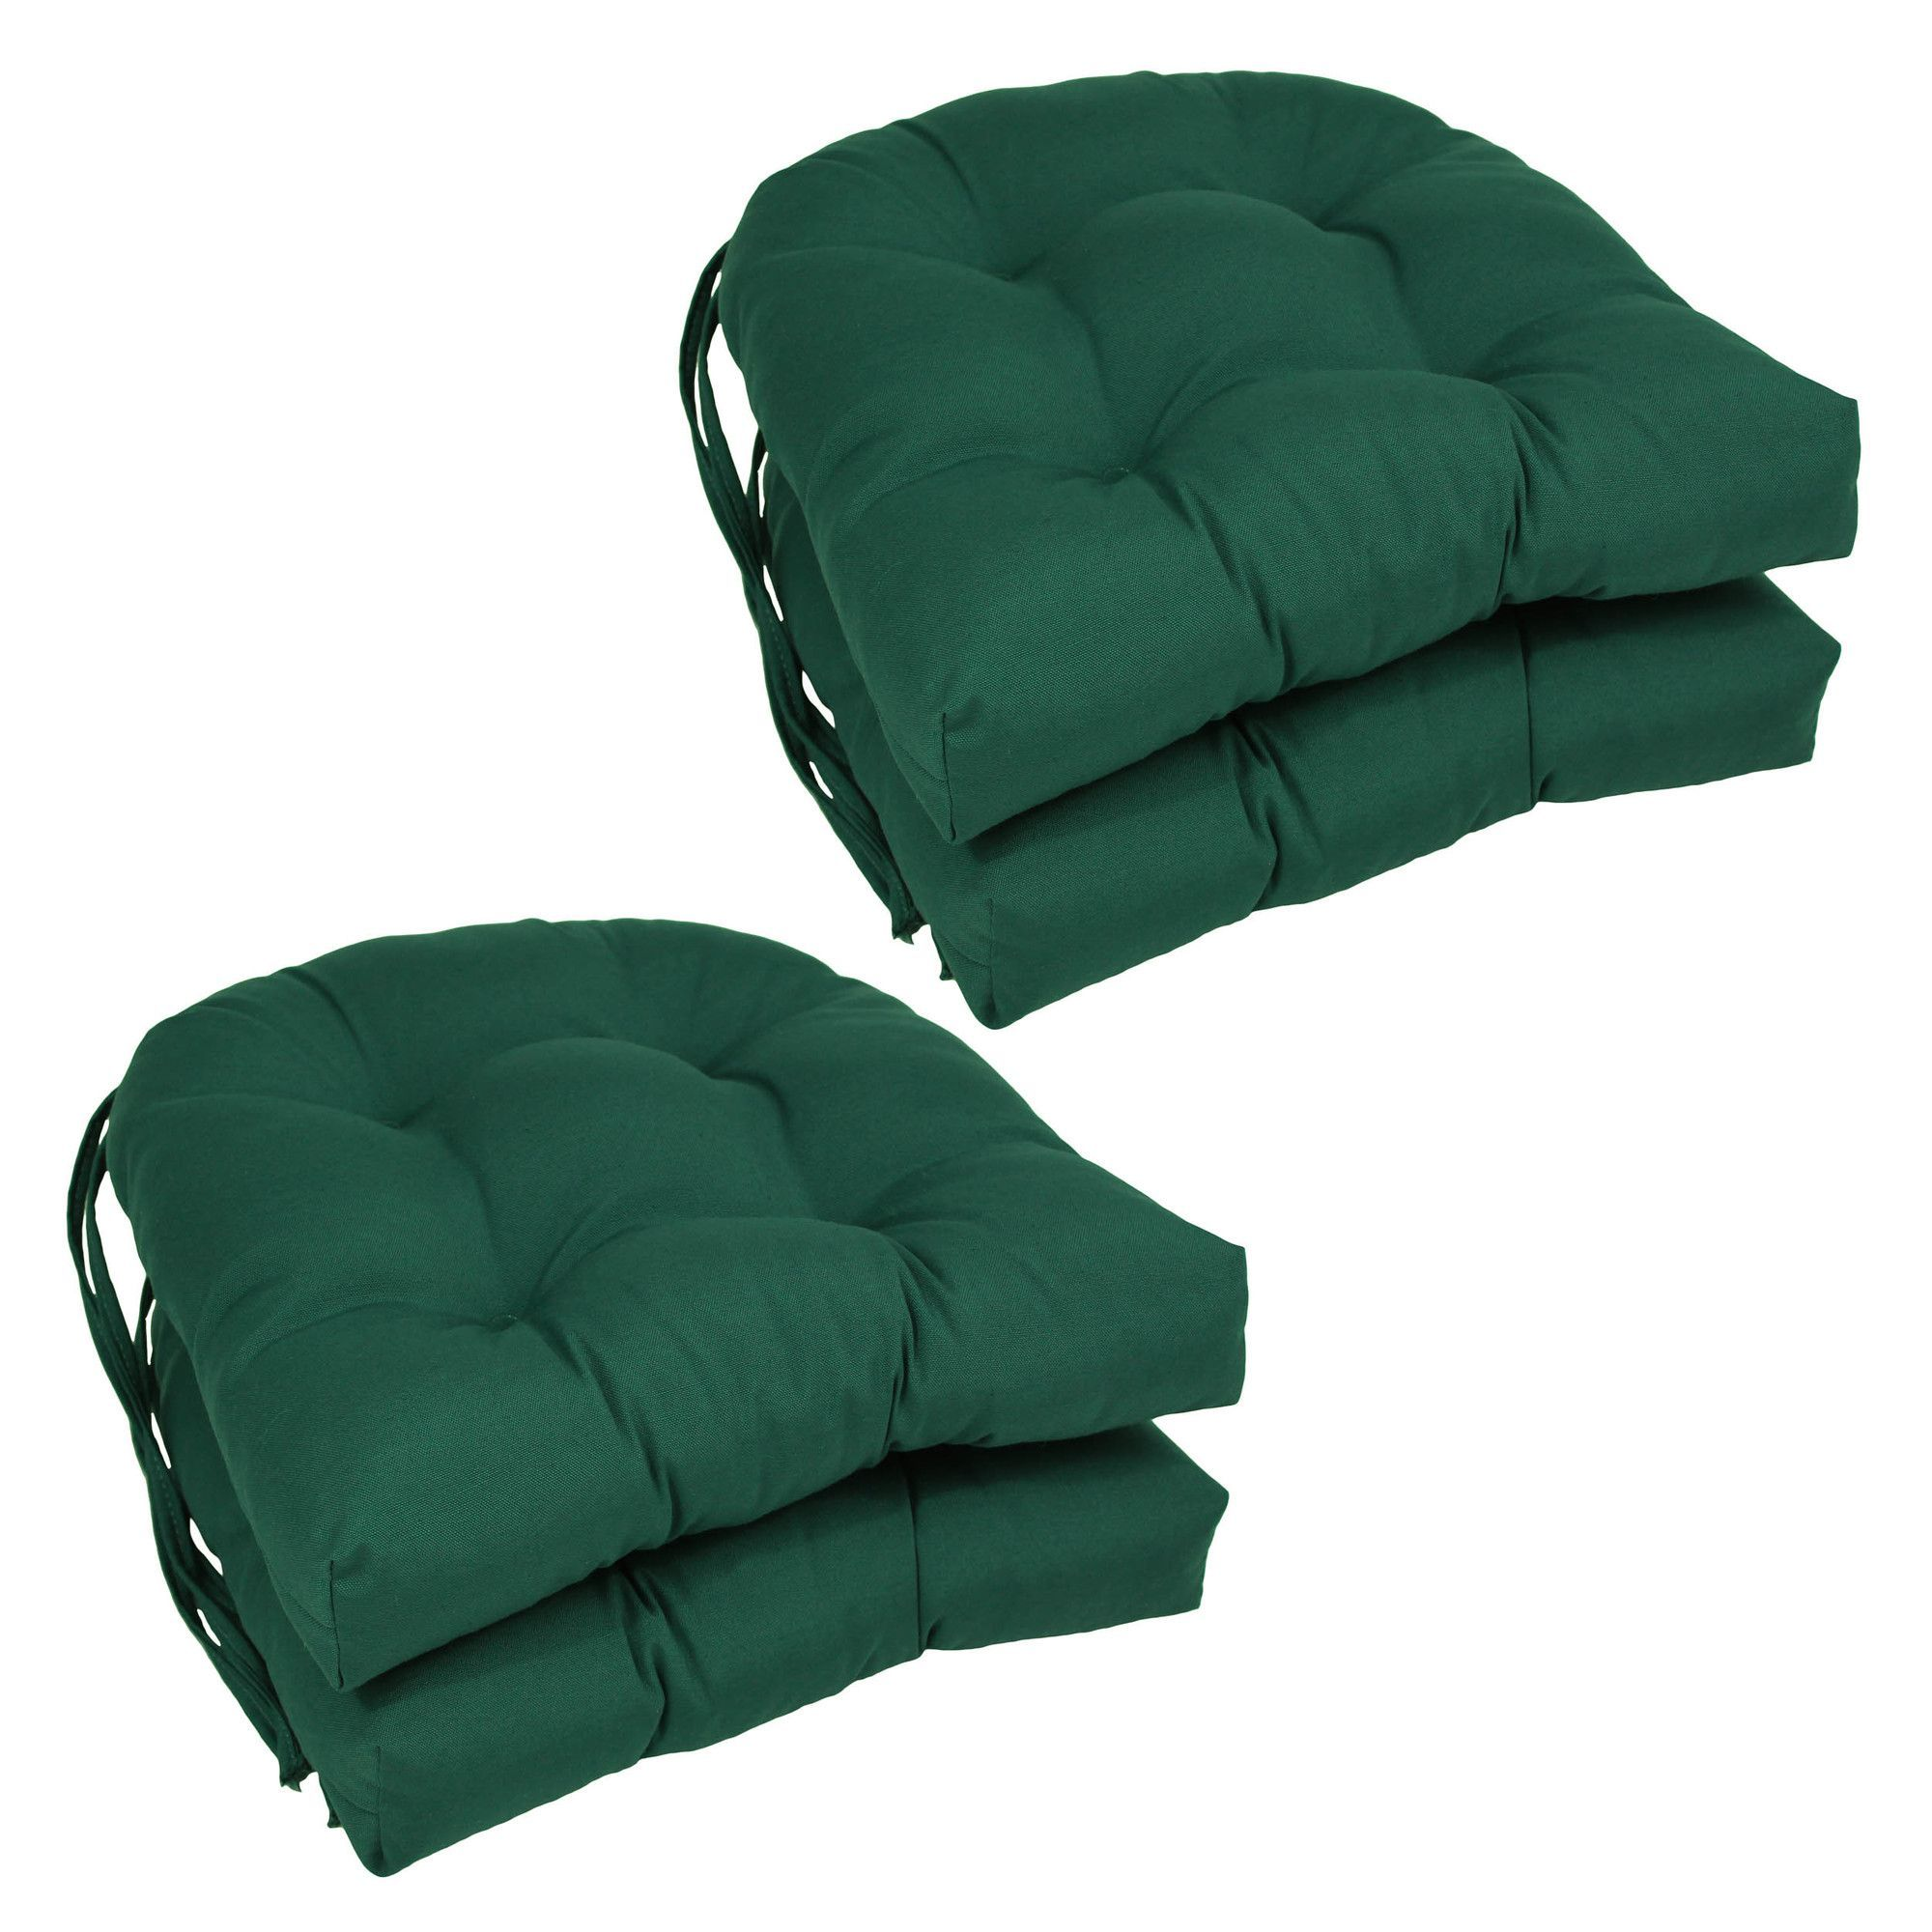 Outdoor Dining Chair Cushion Products Pinterest